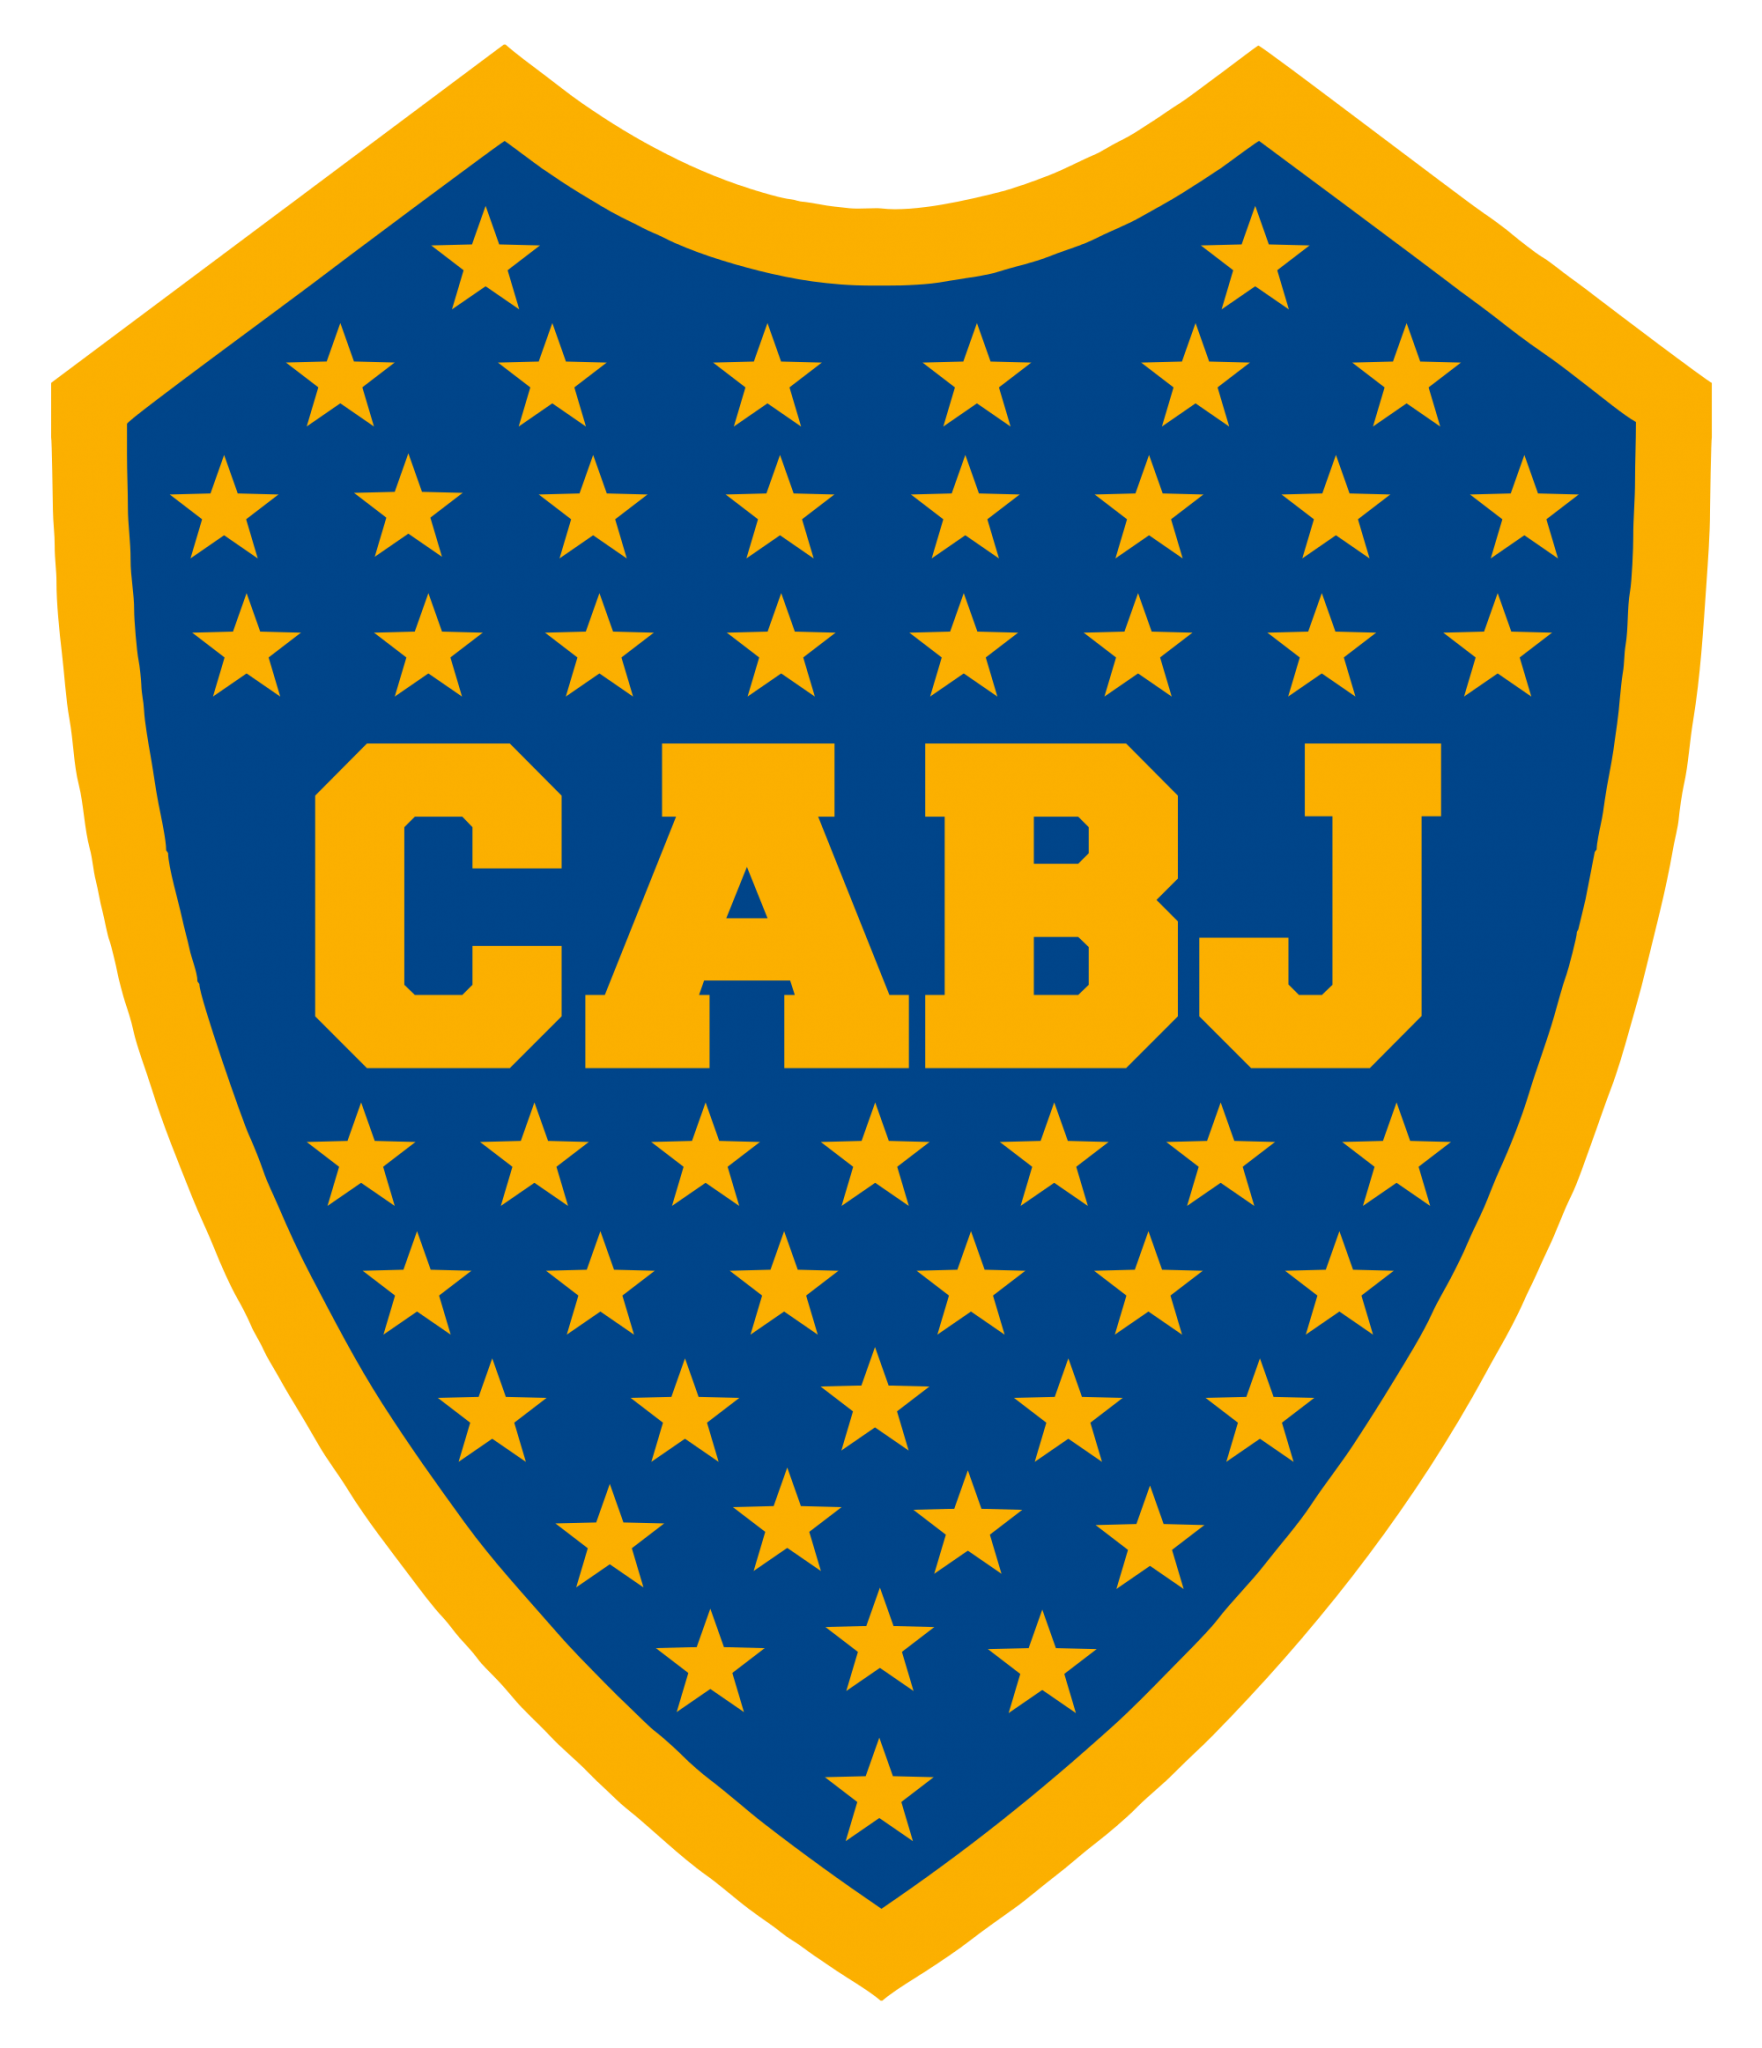 boca-juniors-logo